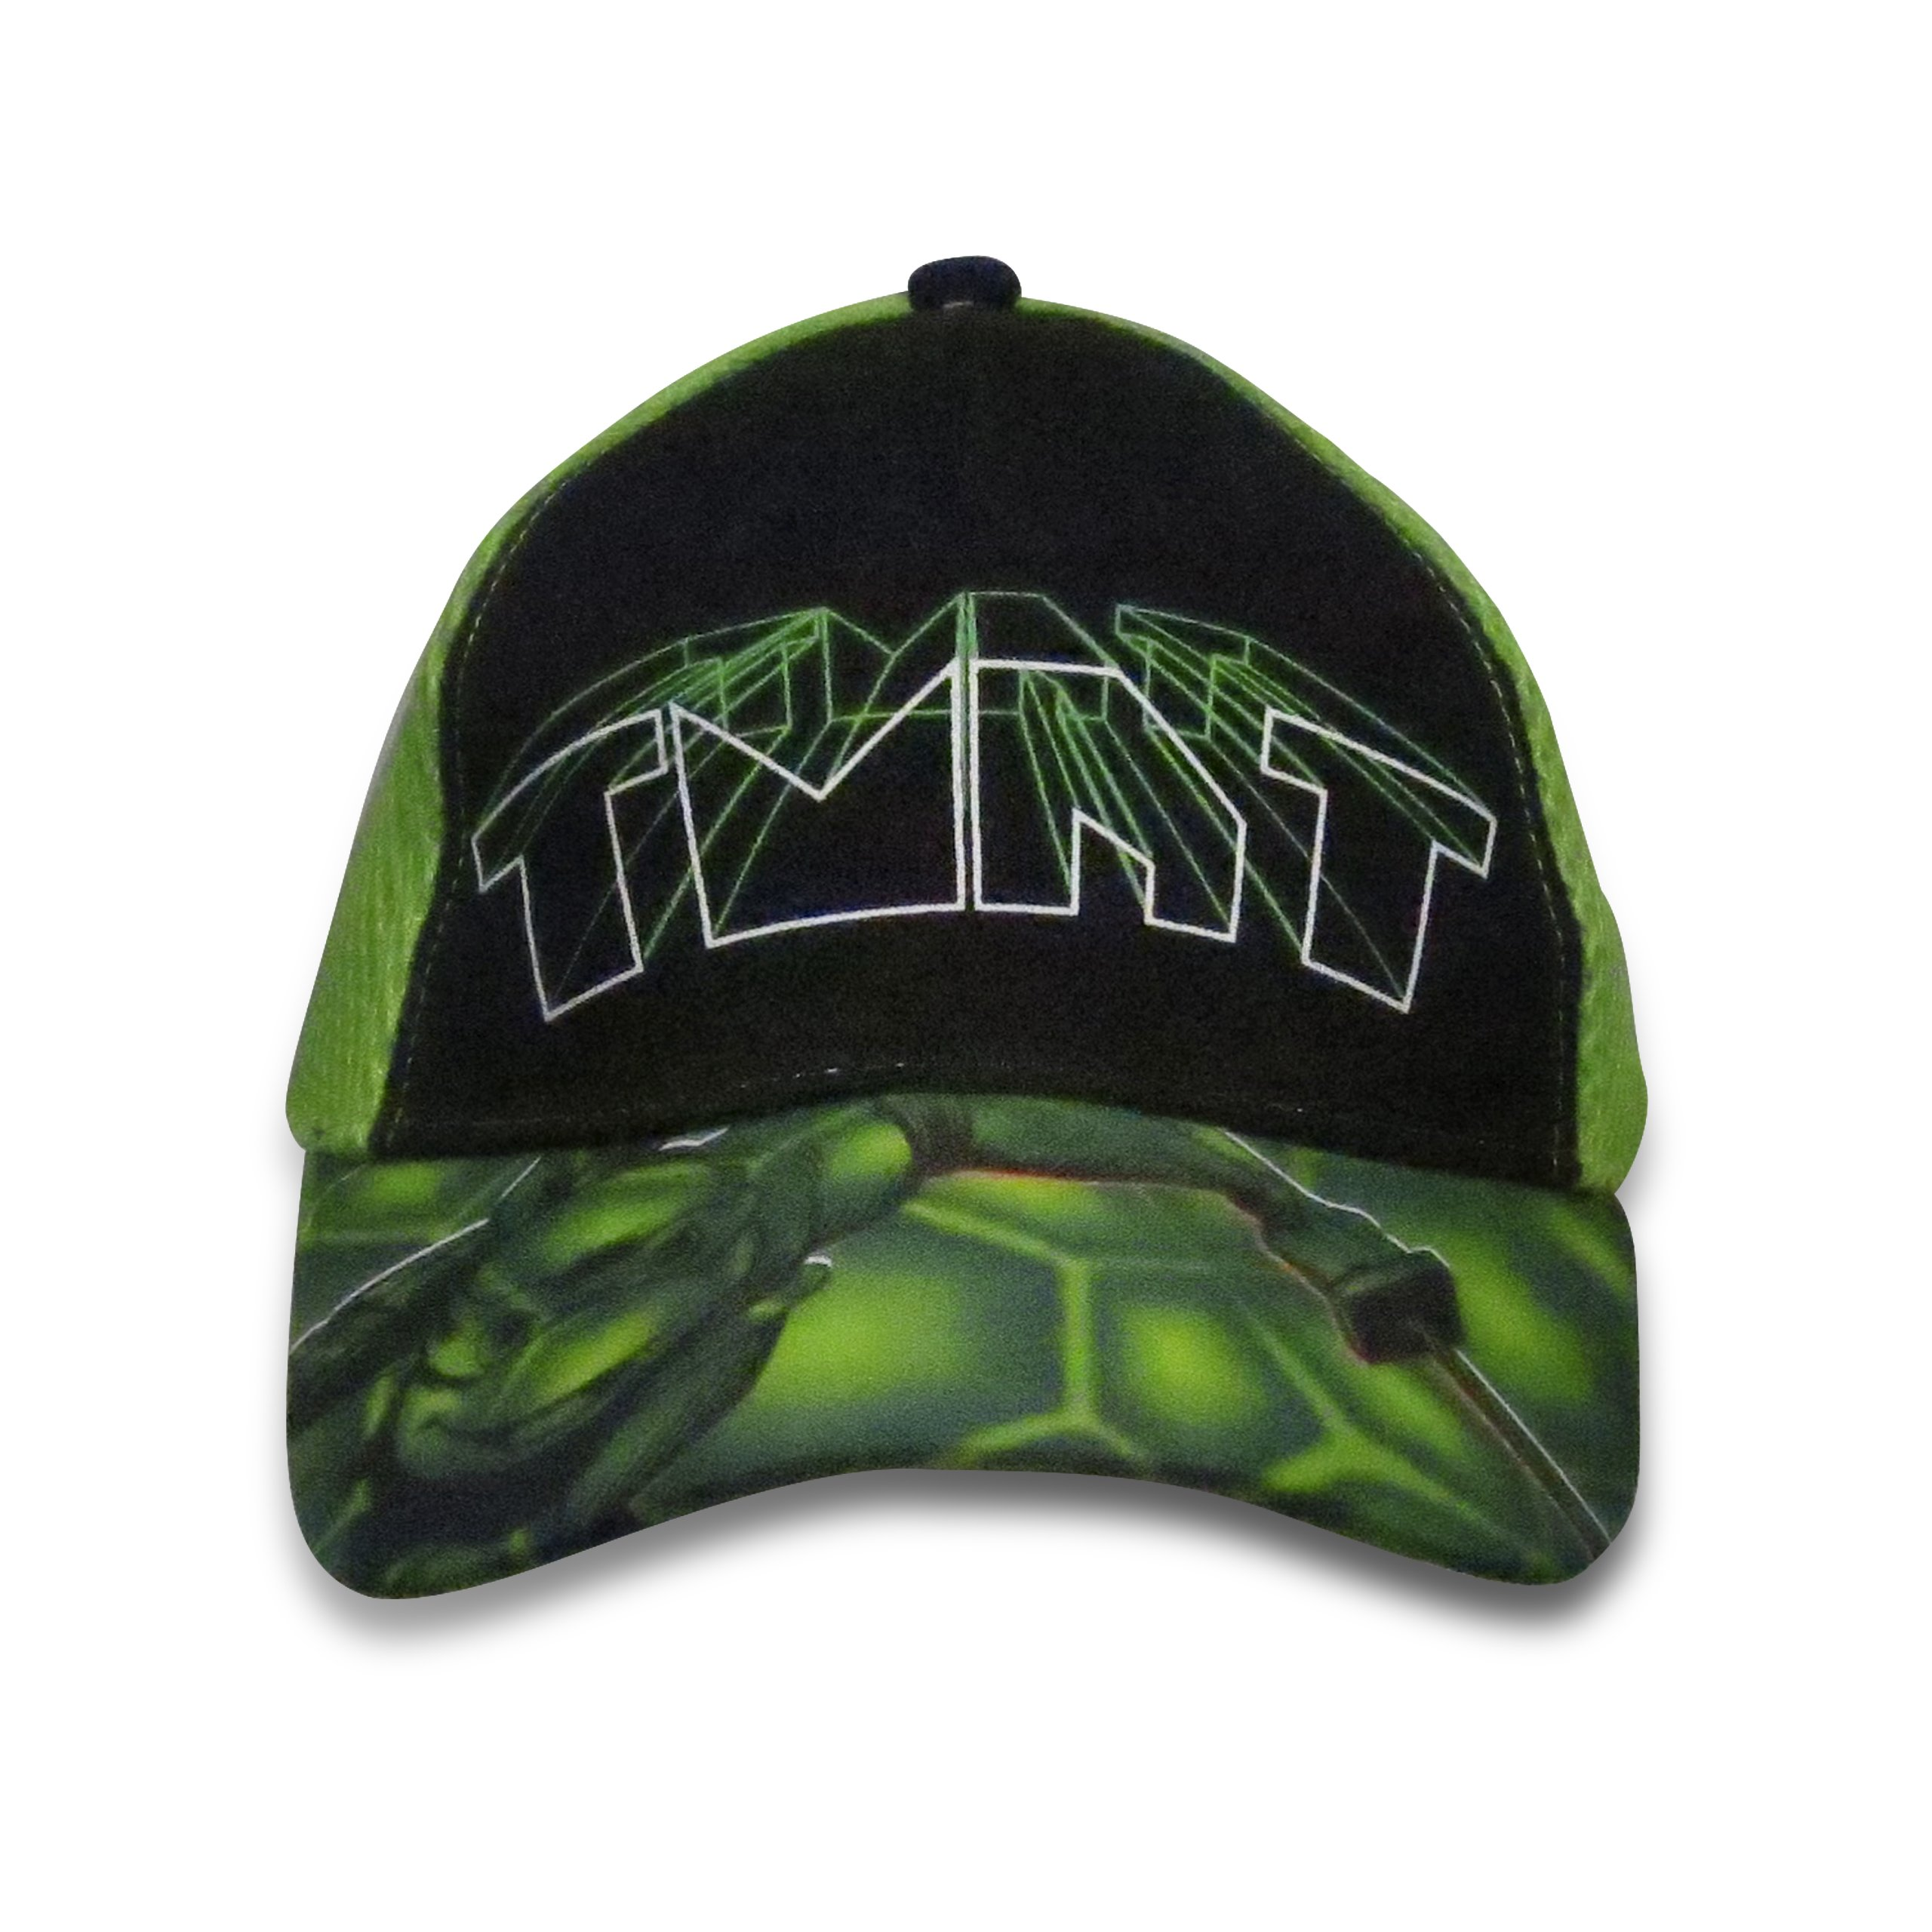 Nickelodeon TMNT Boys Baseball Cap with Snapback Closure - 100% Cotton